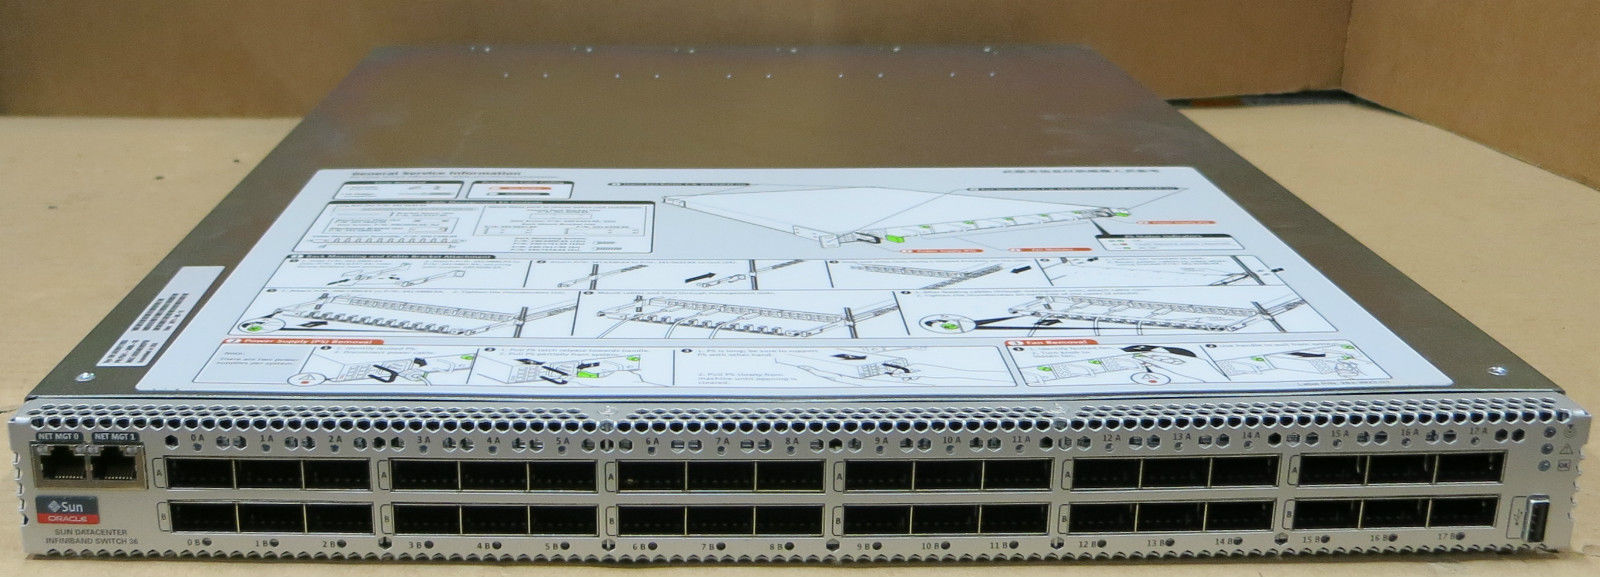 New Sun Oracle 541-3495 Datacenter Infiniband IB QDR 36 1U 36 Port Server Switch